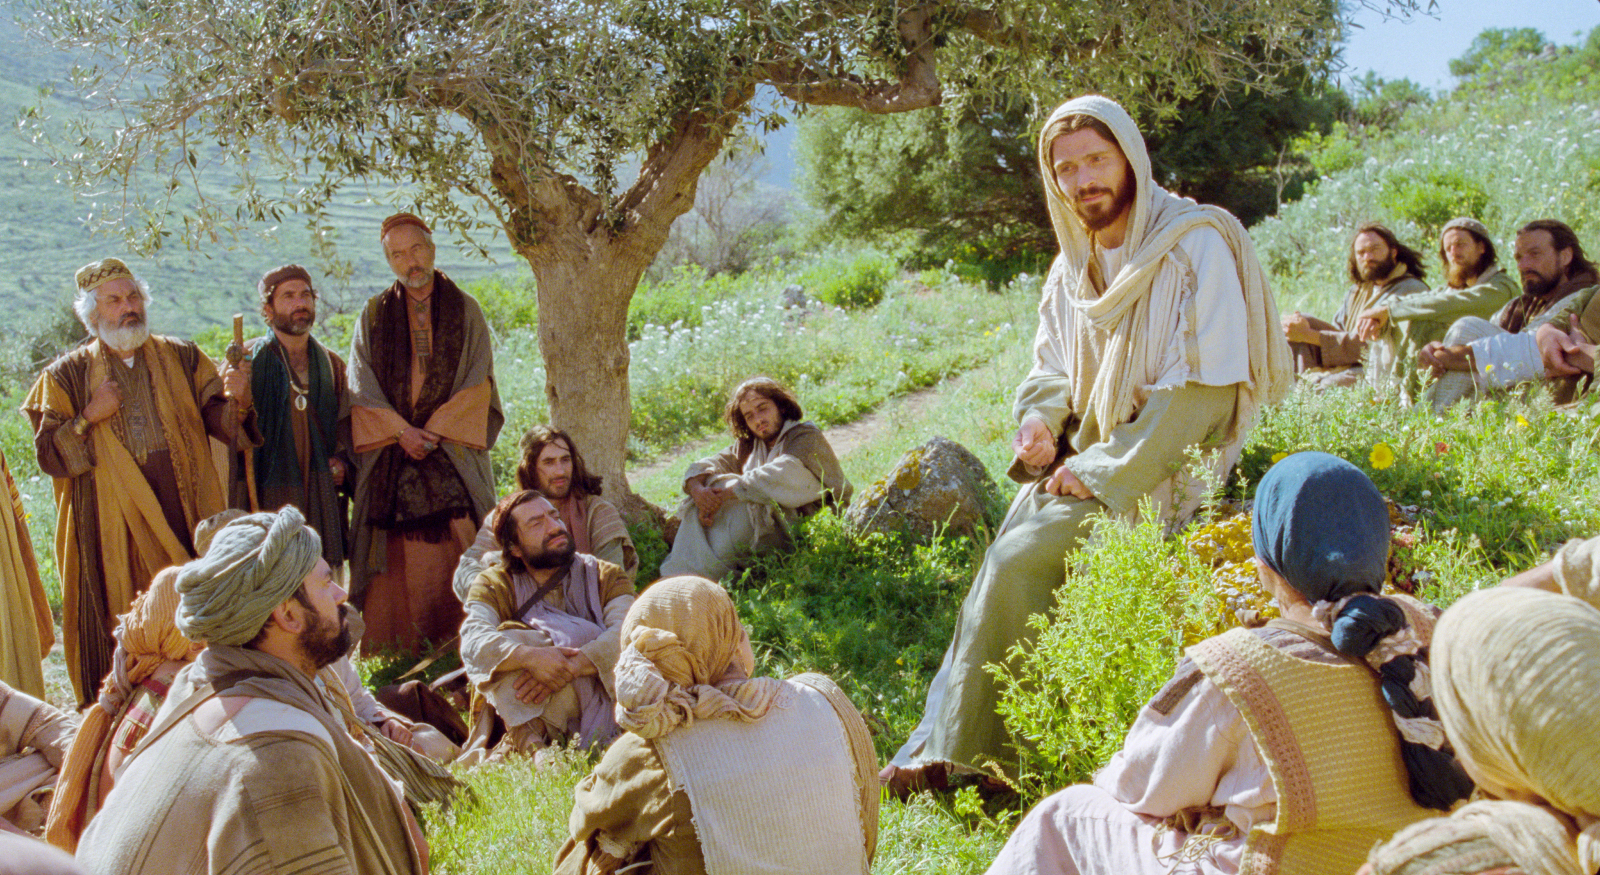 An image from the Church's Bible video series depicts Jesus teaching a group of people.